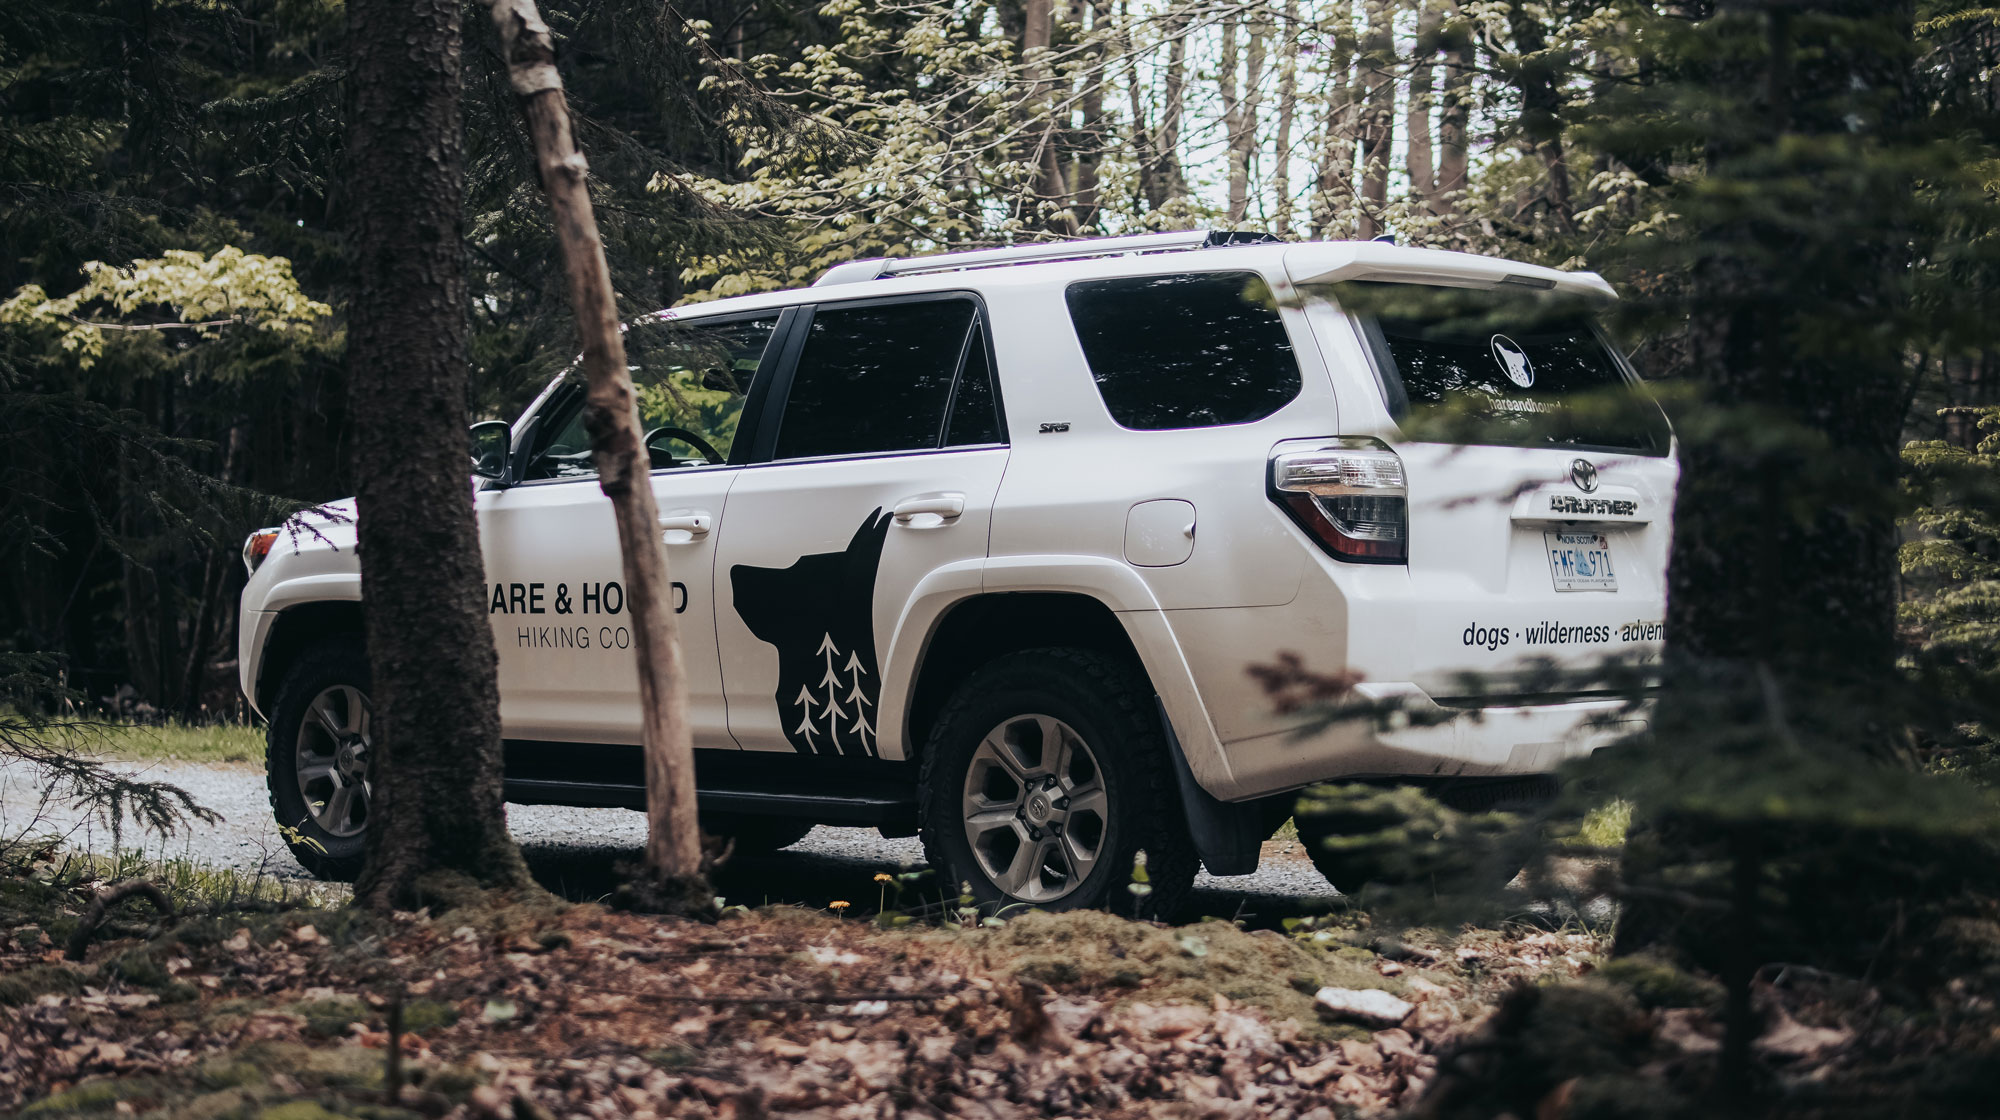 White 4 Runner with Hare & Hound decal